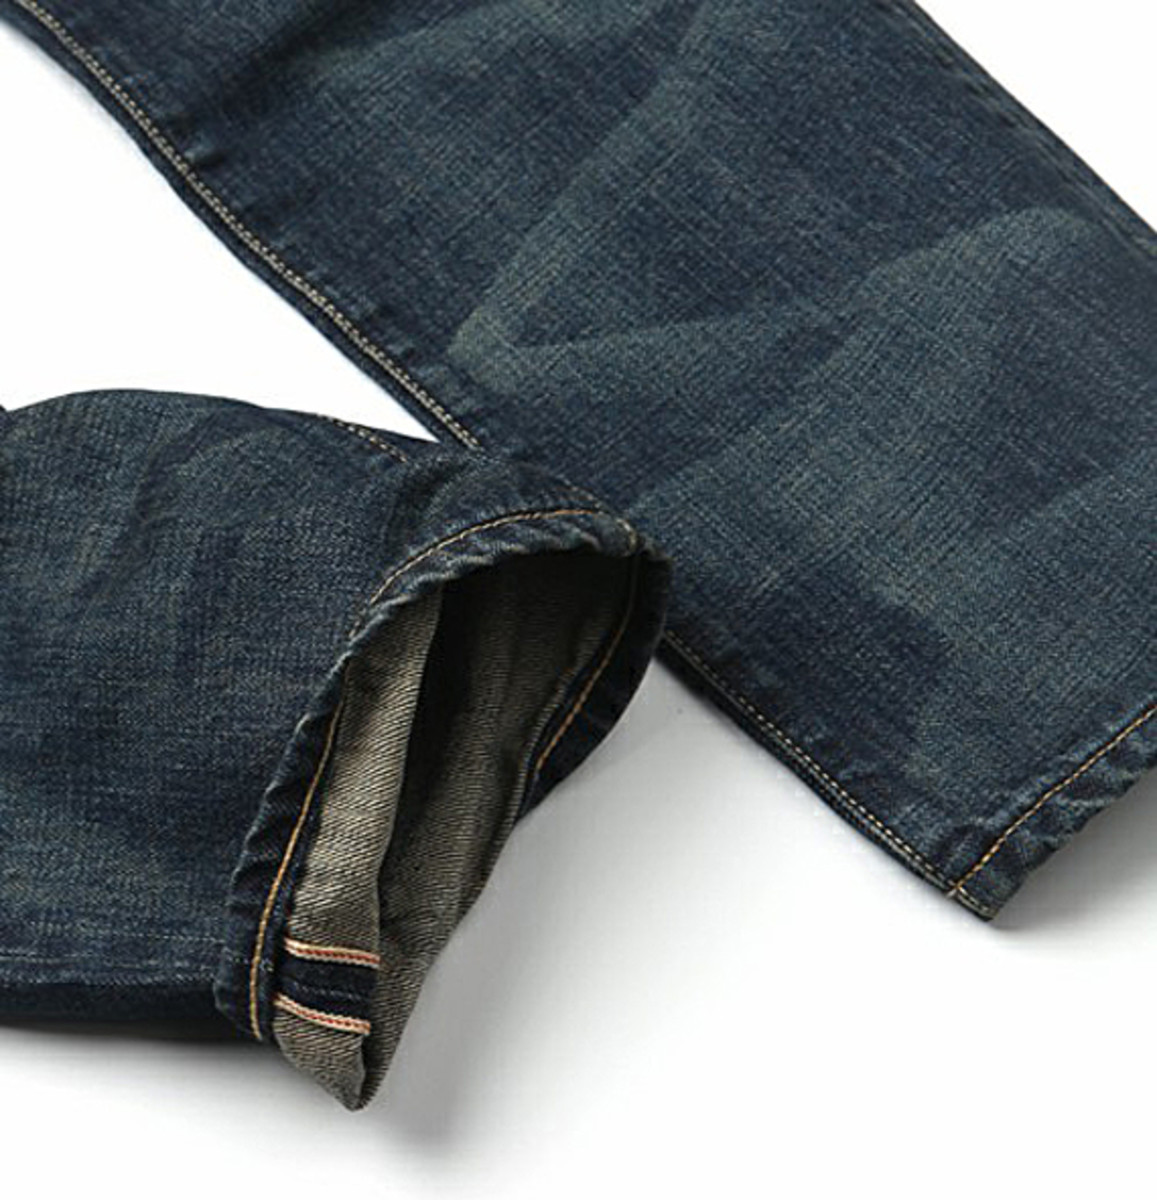 devilock-neighborhood-selvedge-denim-09